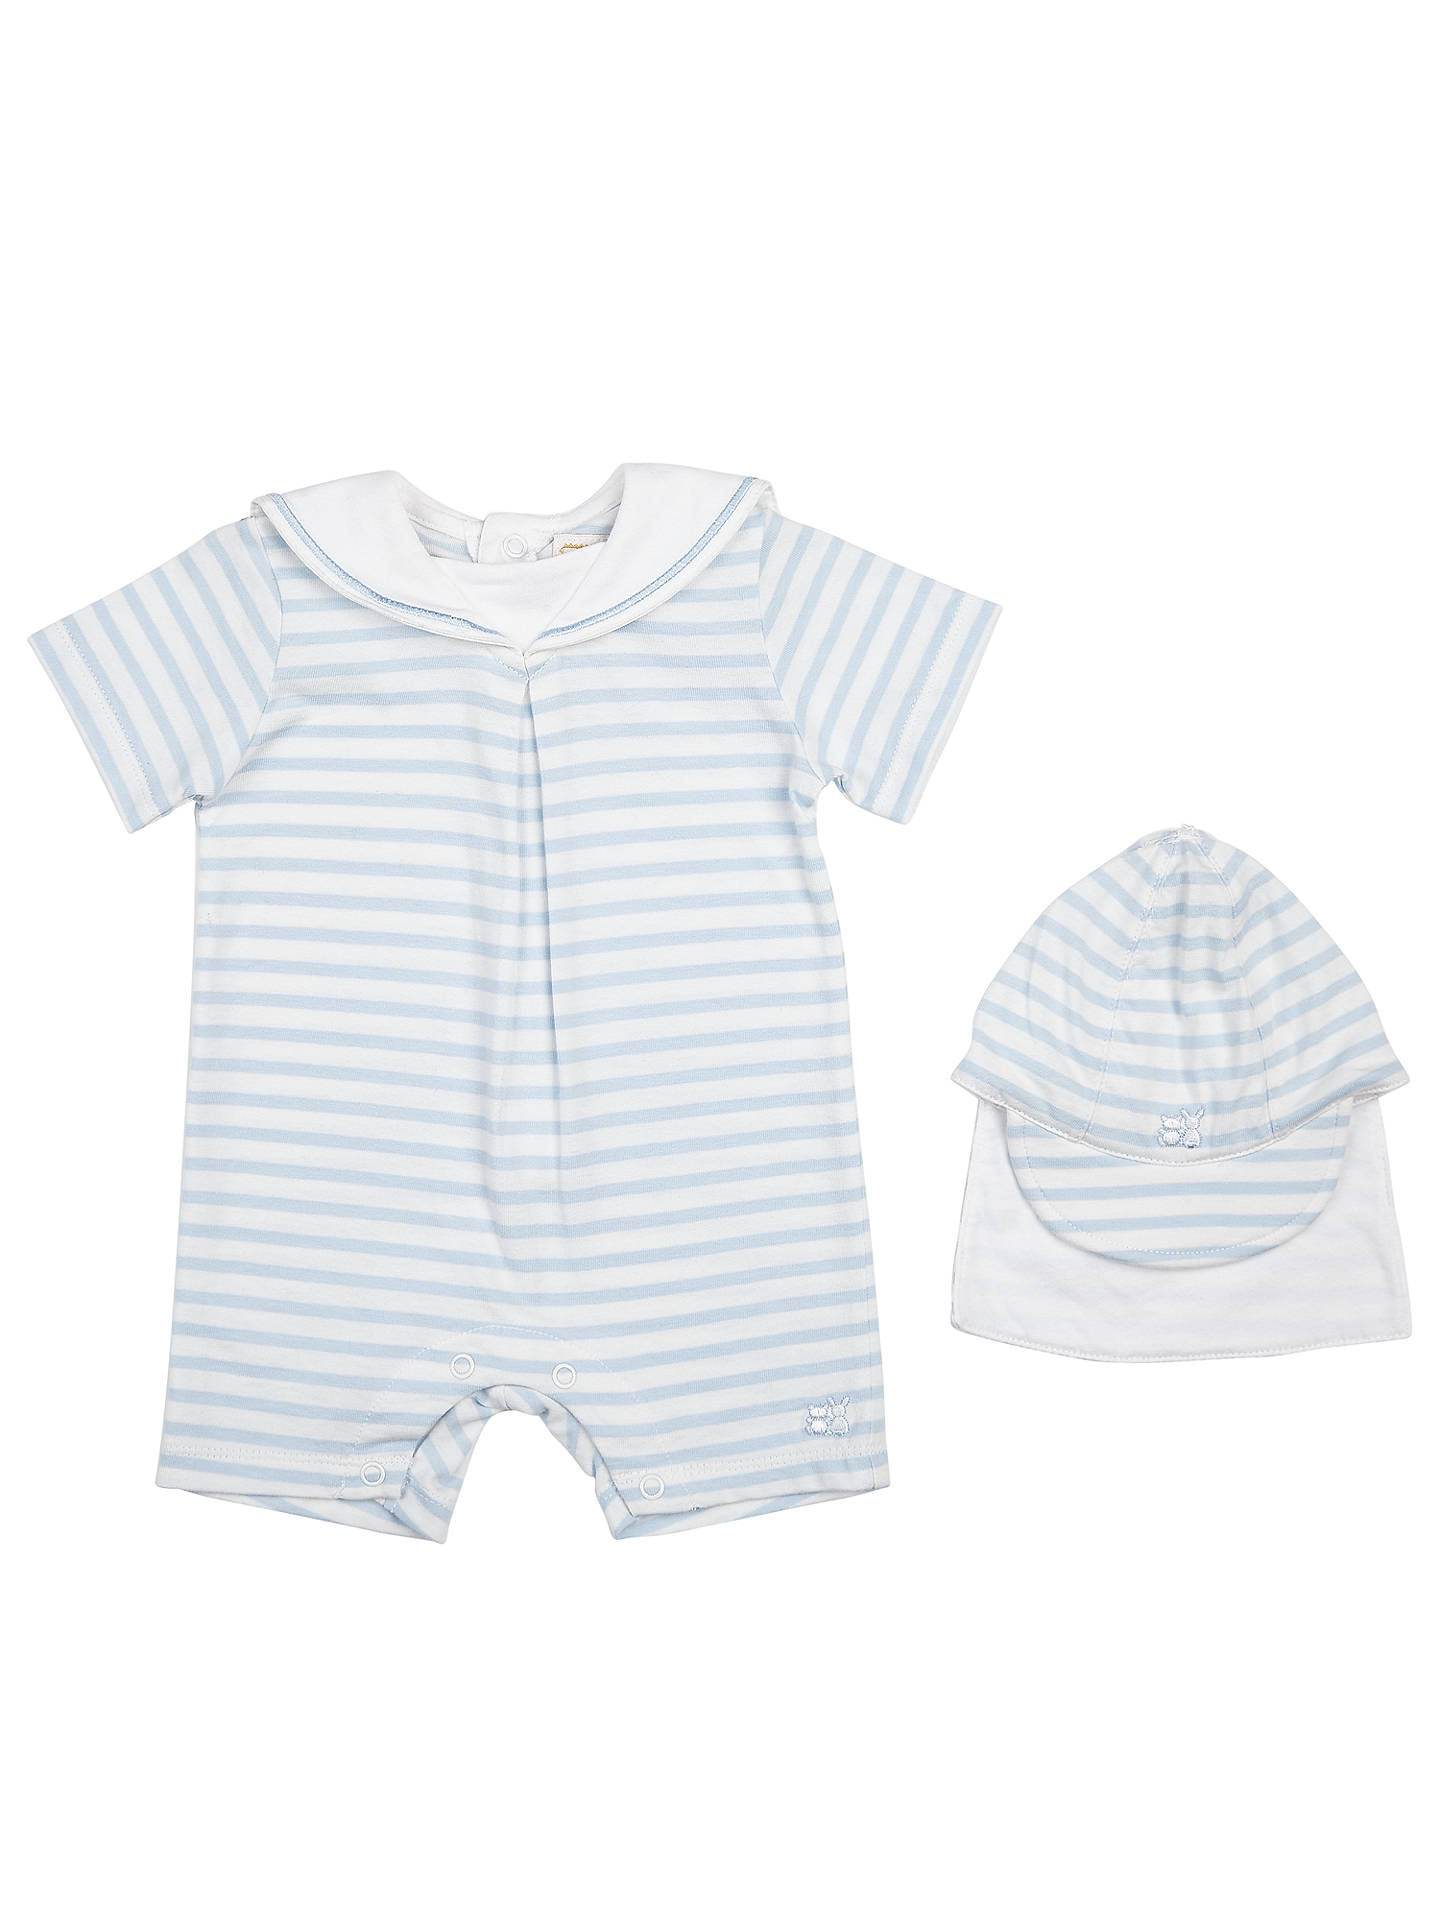 BuyEmile et Rose Baby Heston Stripe Playsuit and Hat d5b740ff0458